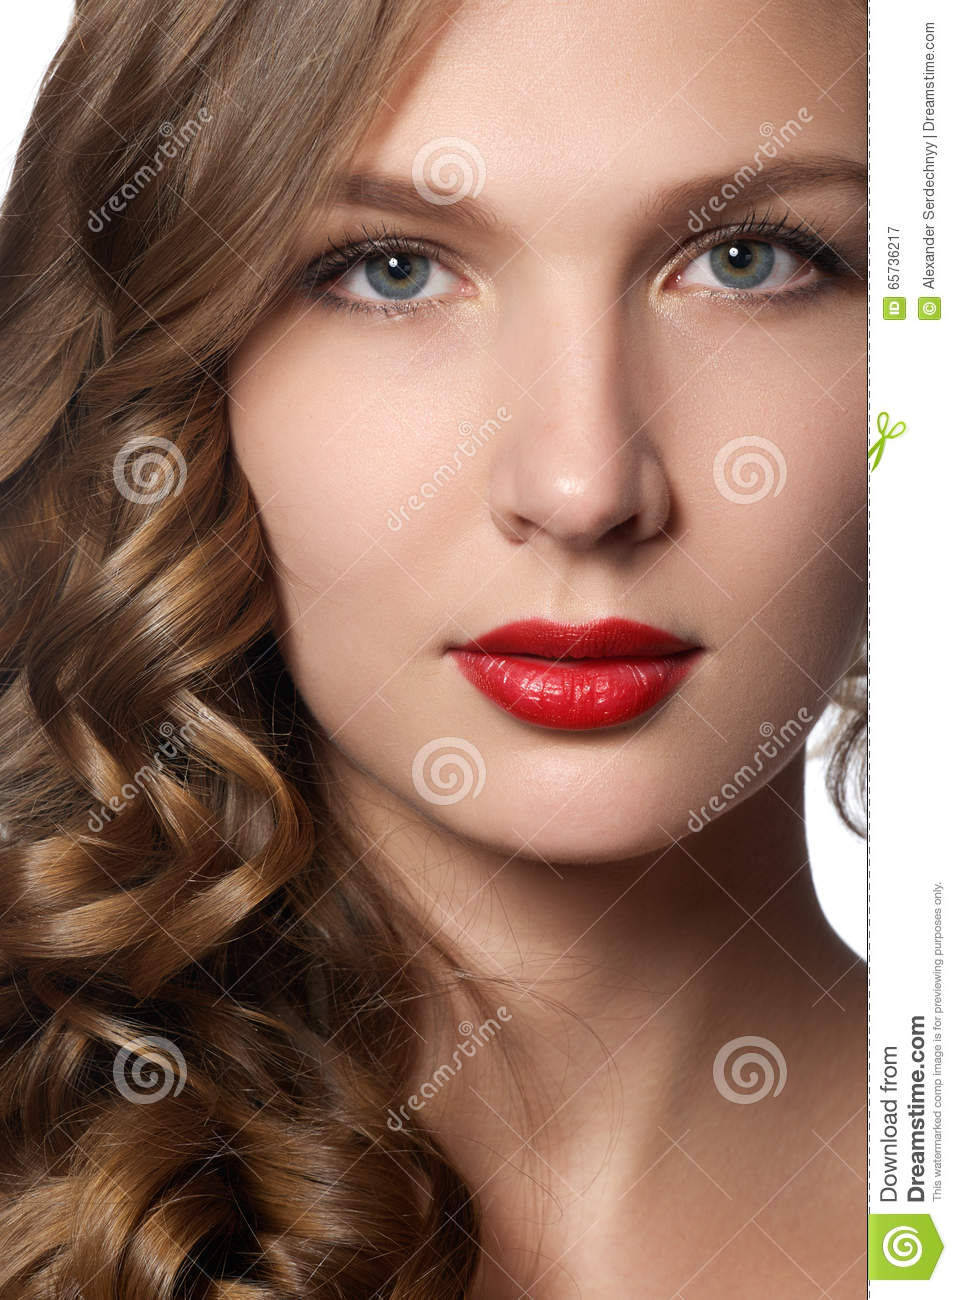 Beautiful young woman with long curly hair. Beautiful model with long curly brown hair. Lovely model with shiny volume curly hair